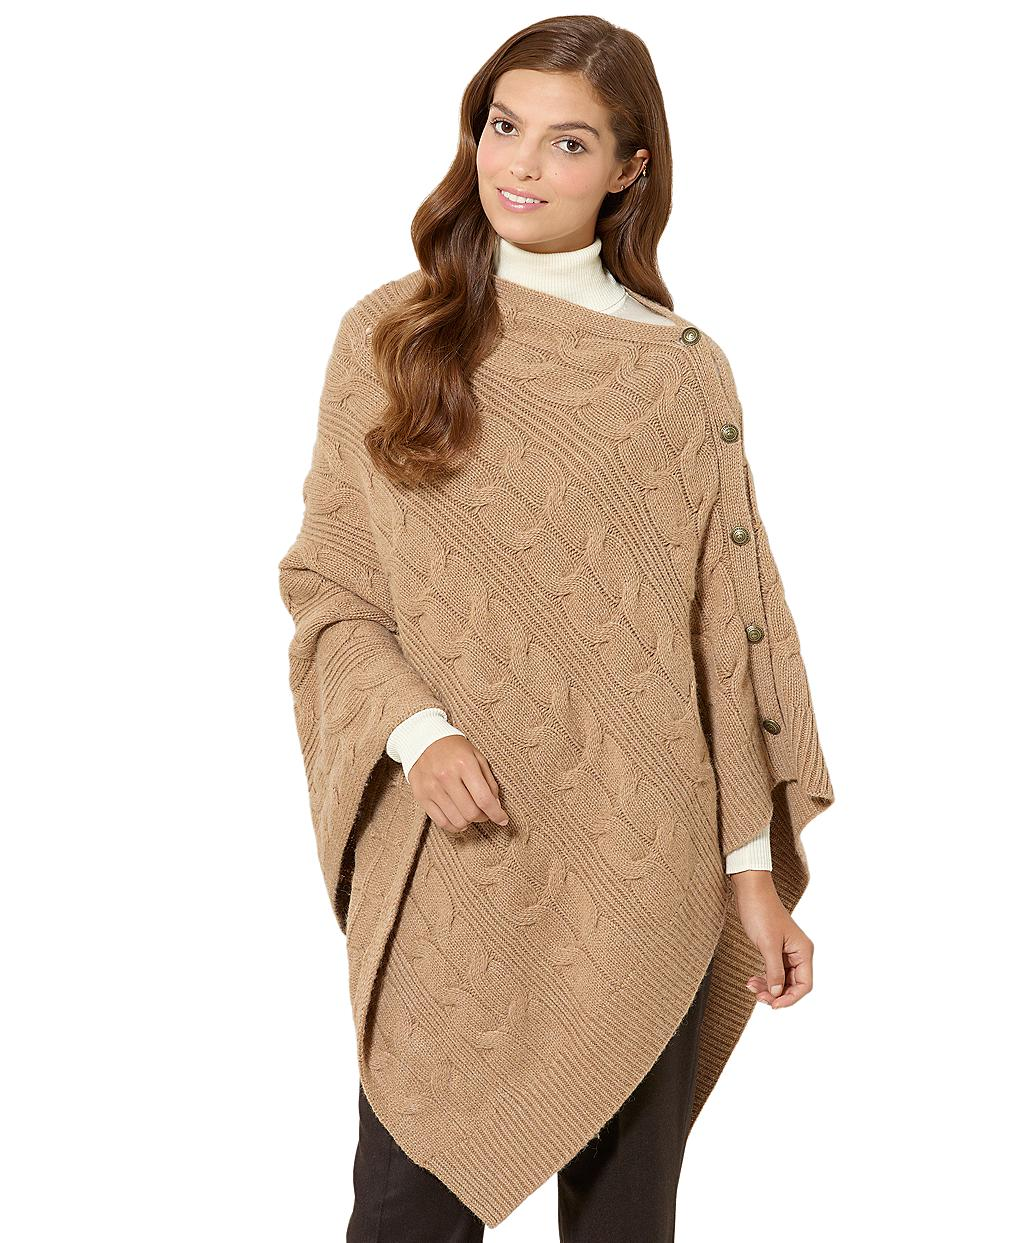 Find great deals on eBay for camel poncho. Shop with confidence.